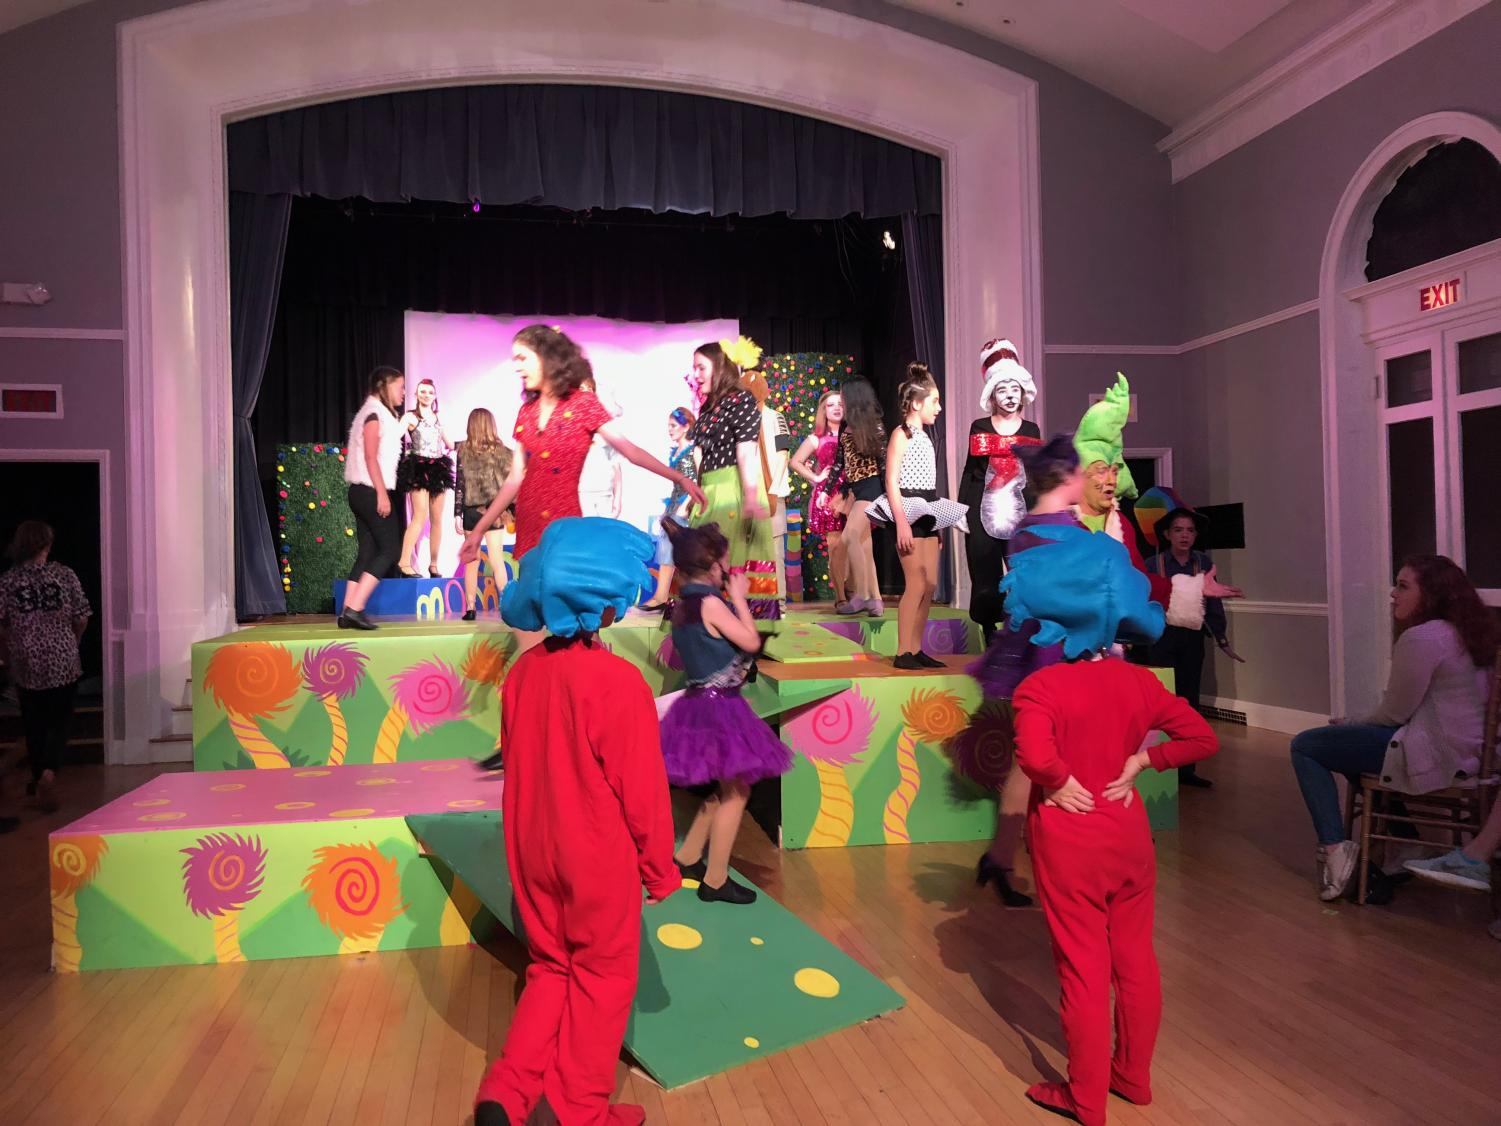 Seussical The Musical in rehearsal fo the big debut.